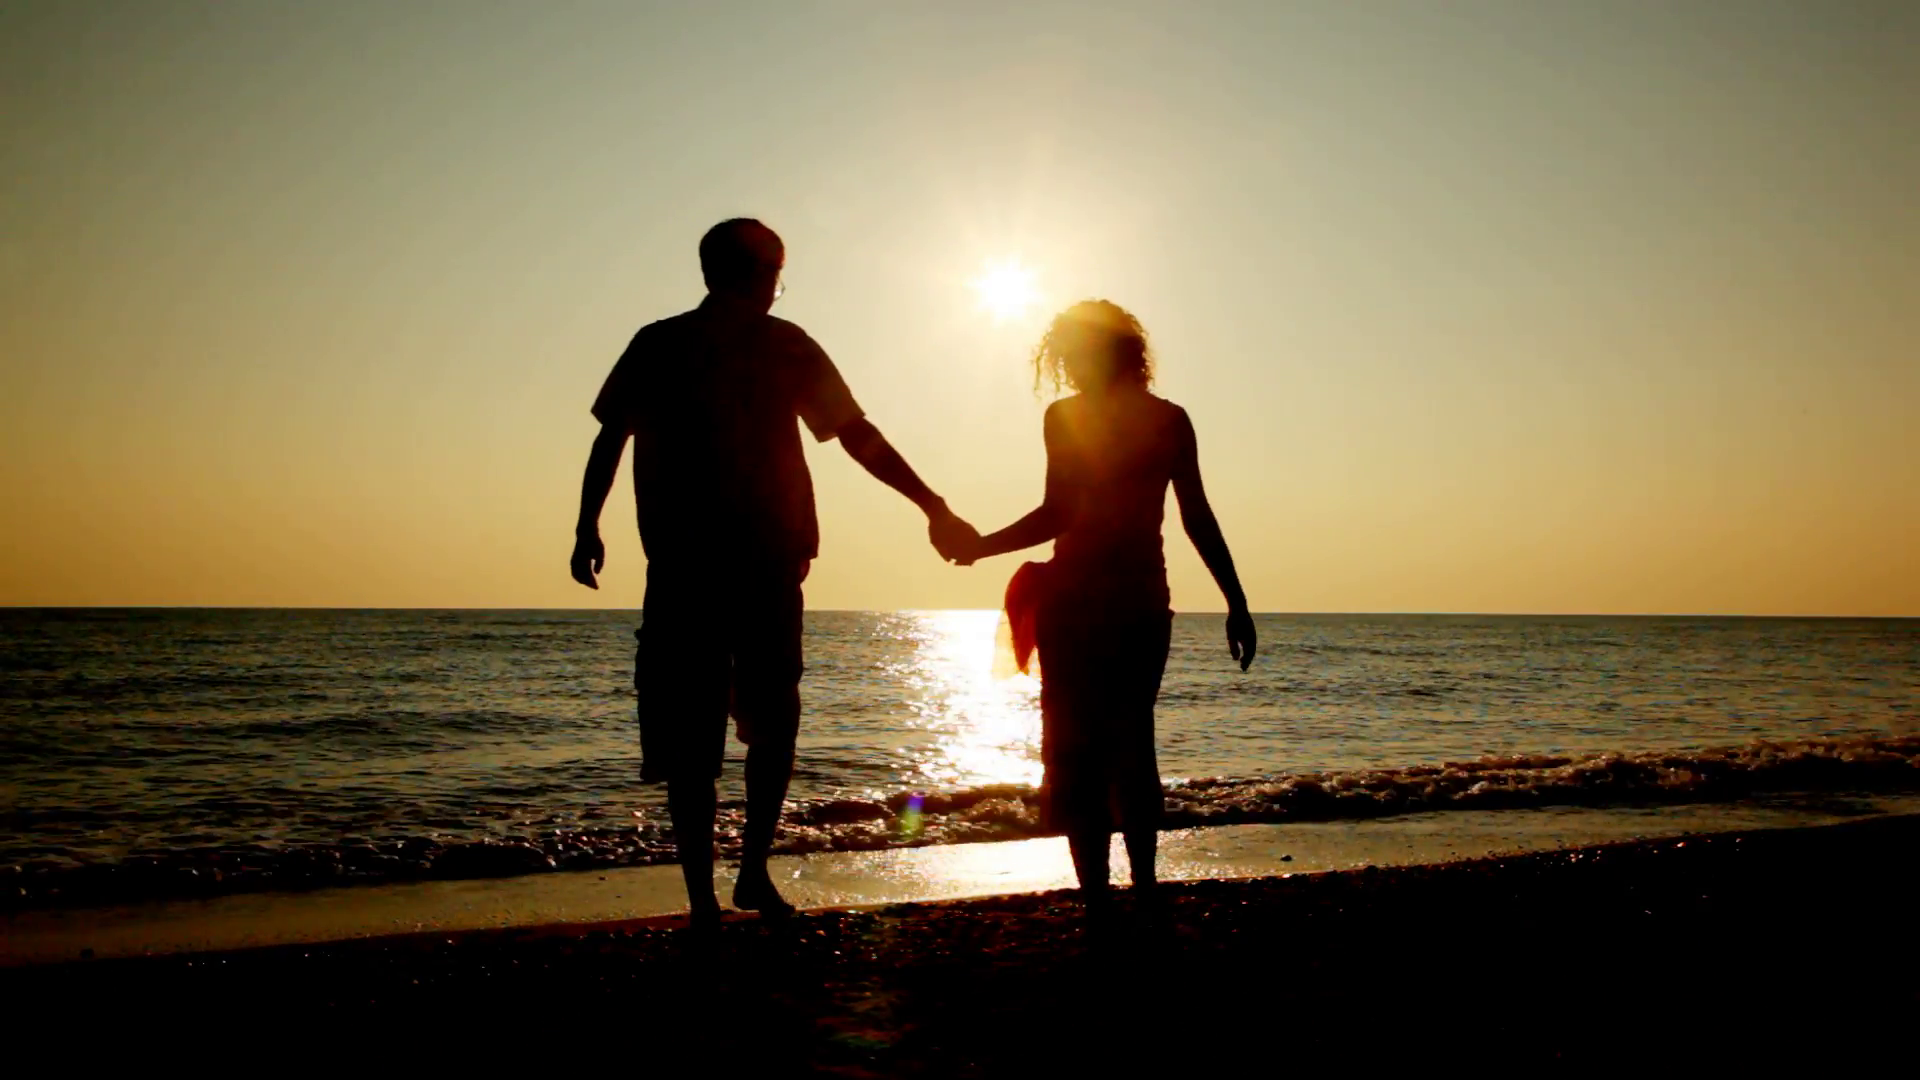 Girl and boy go at beach holding hands for sea, silhouettes on ...